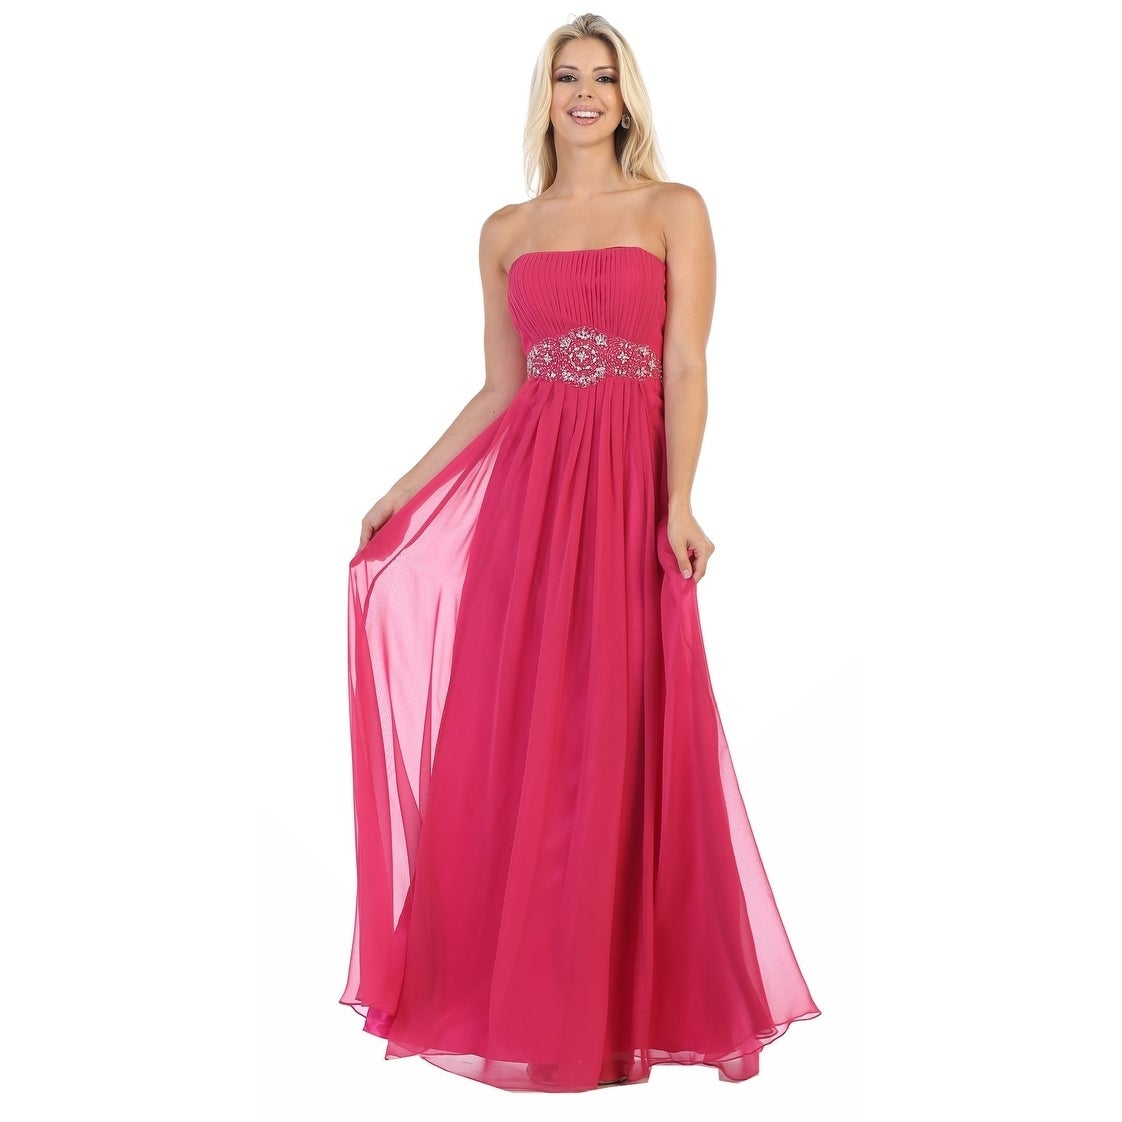 b0cca48eec Shop Simple Yet Beautiful Long Bridesmaids Dresses   Plus Size - Free  Shipping Today - Overstock - 24184055